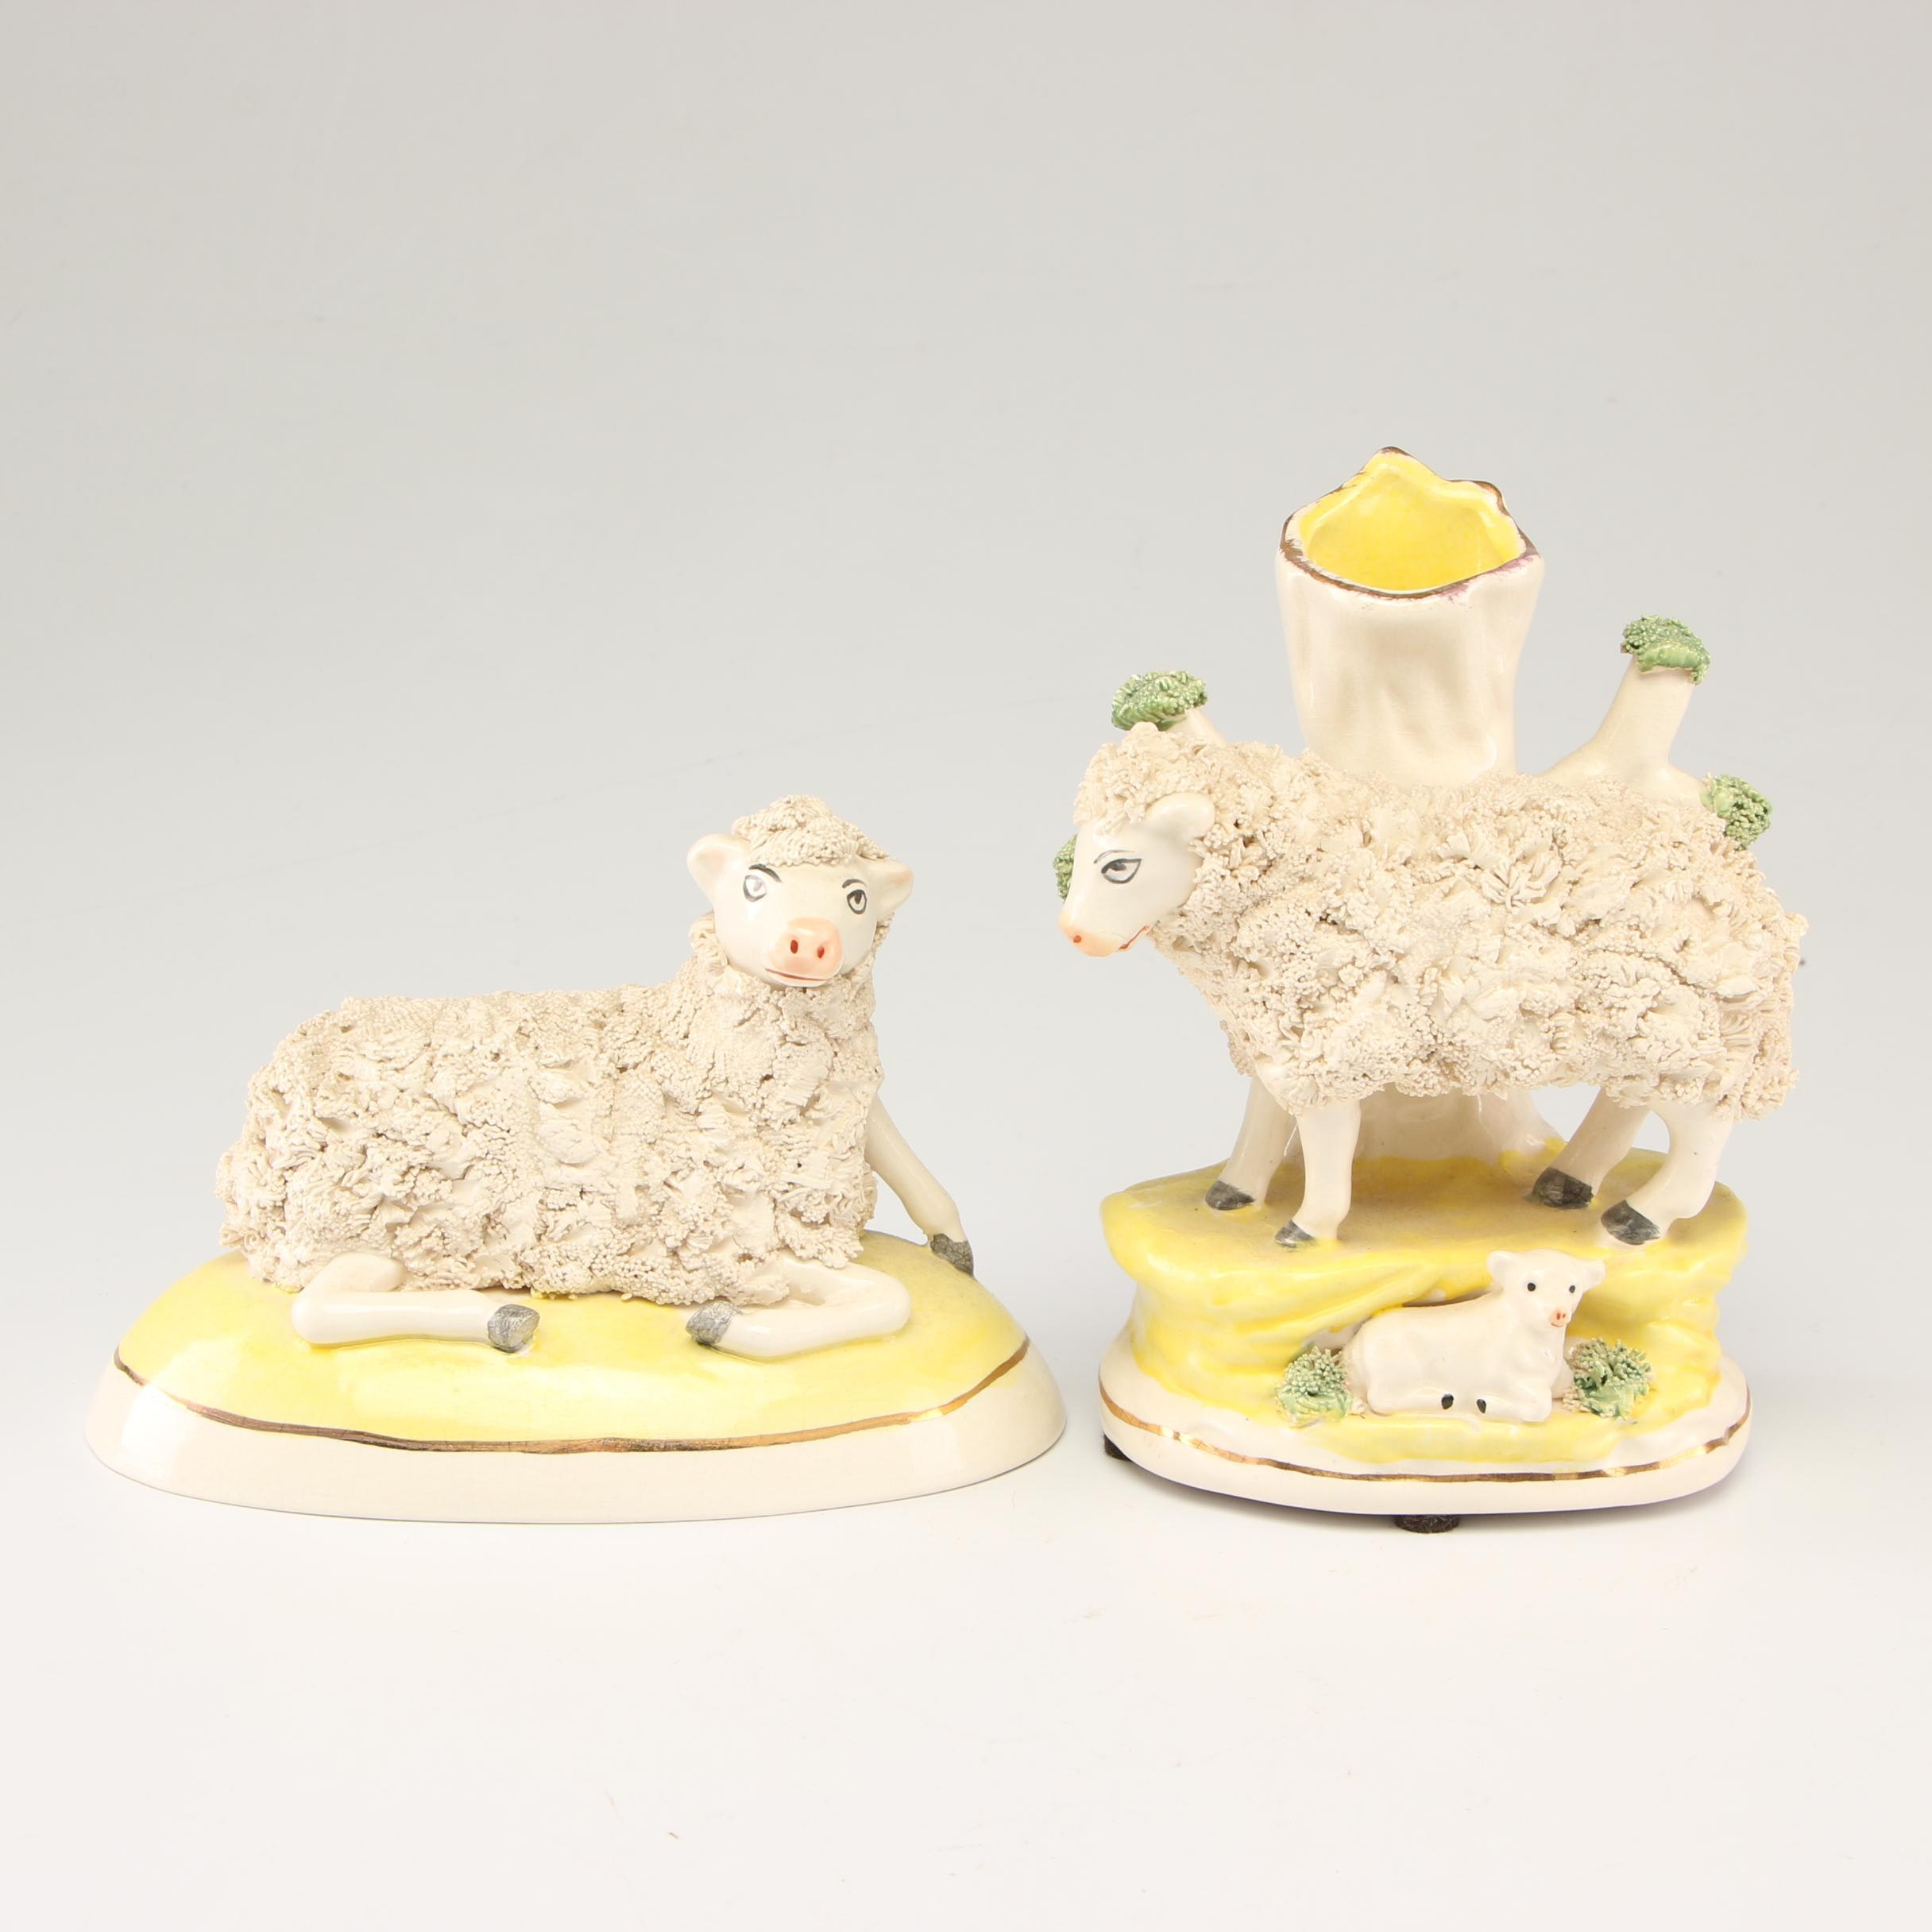 Staffordshire Style Sheep Figurine and Spill Vase, Early to Mid 20th Century